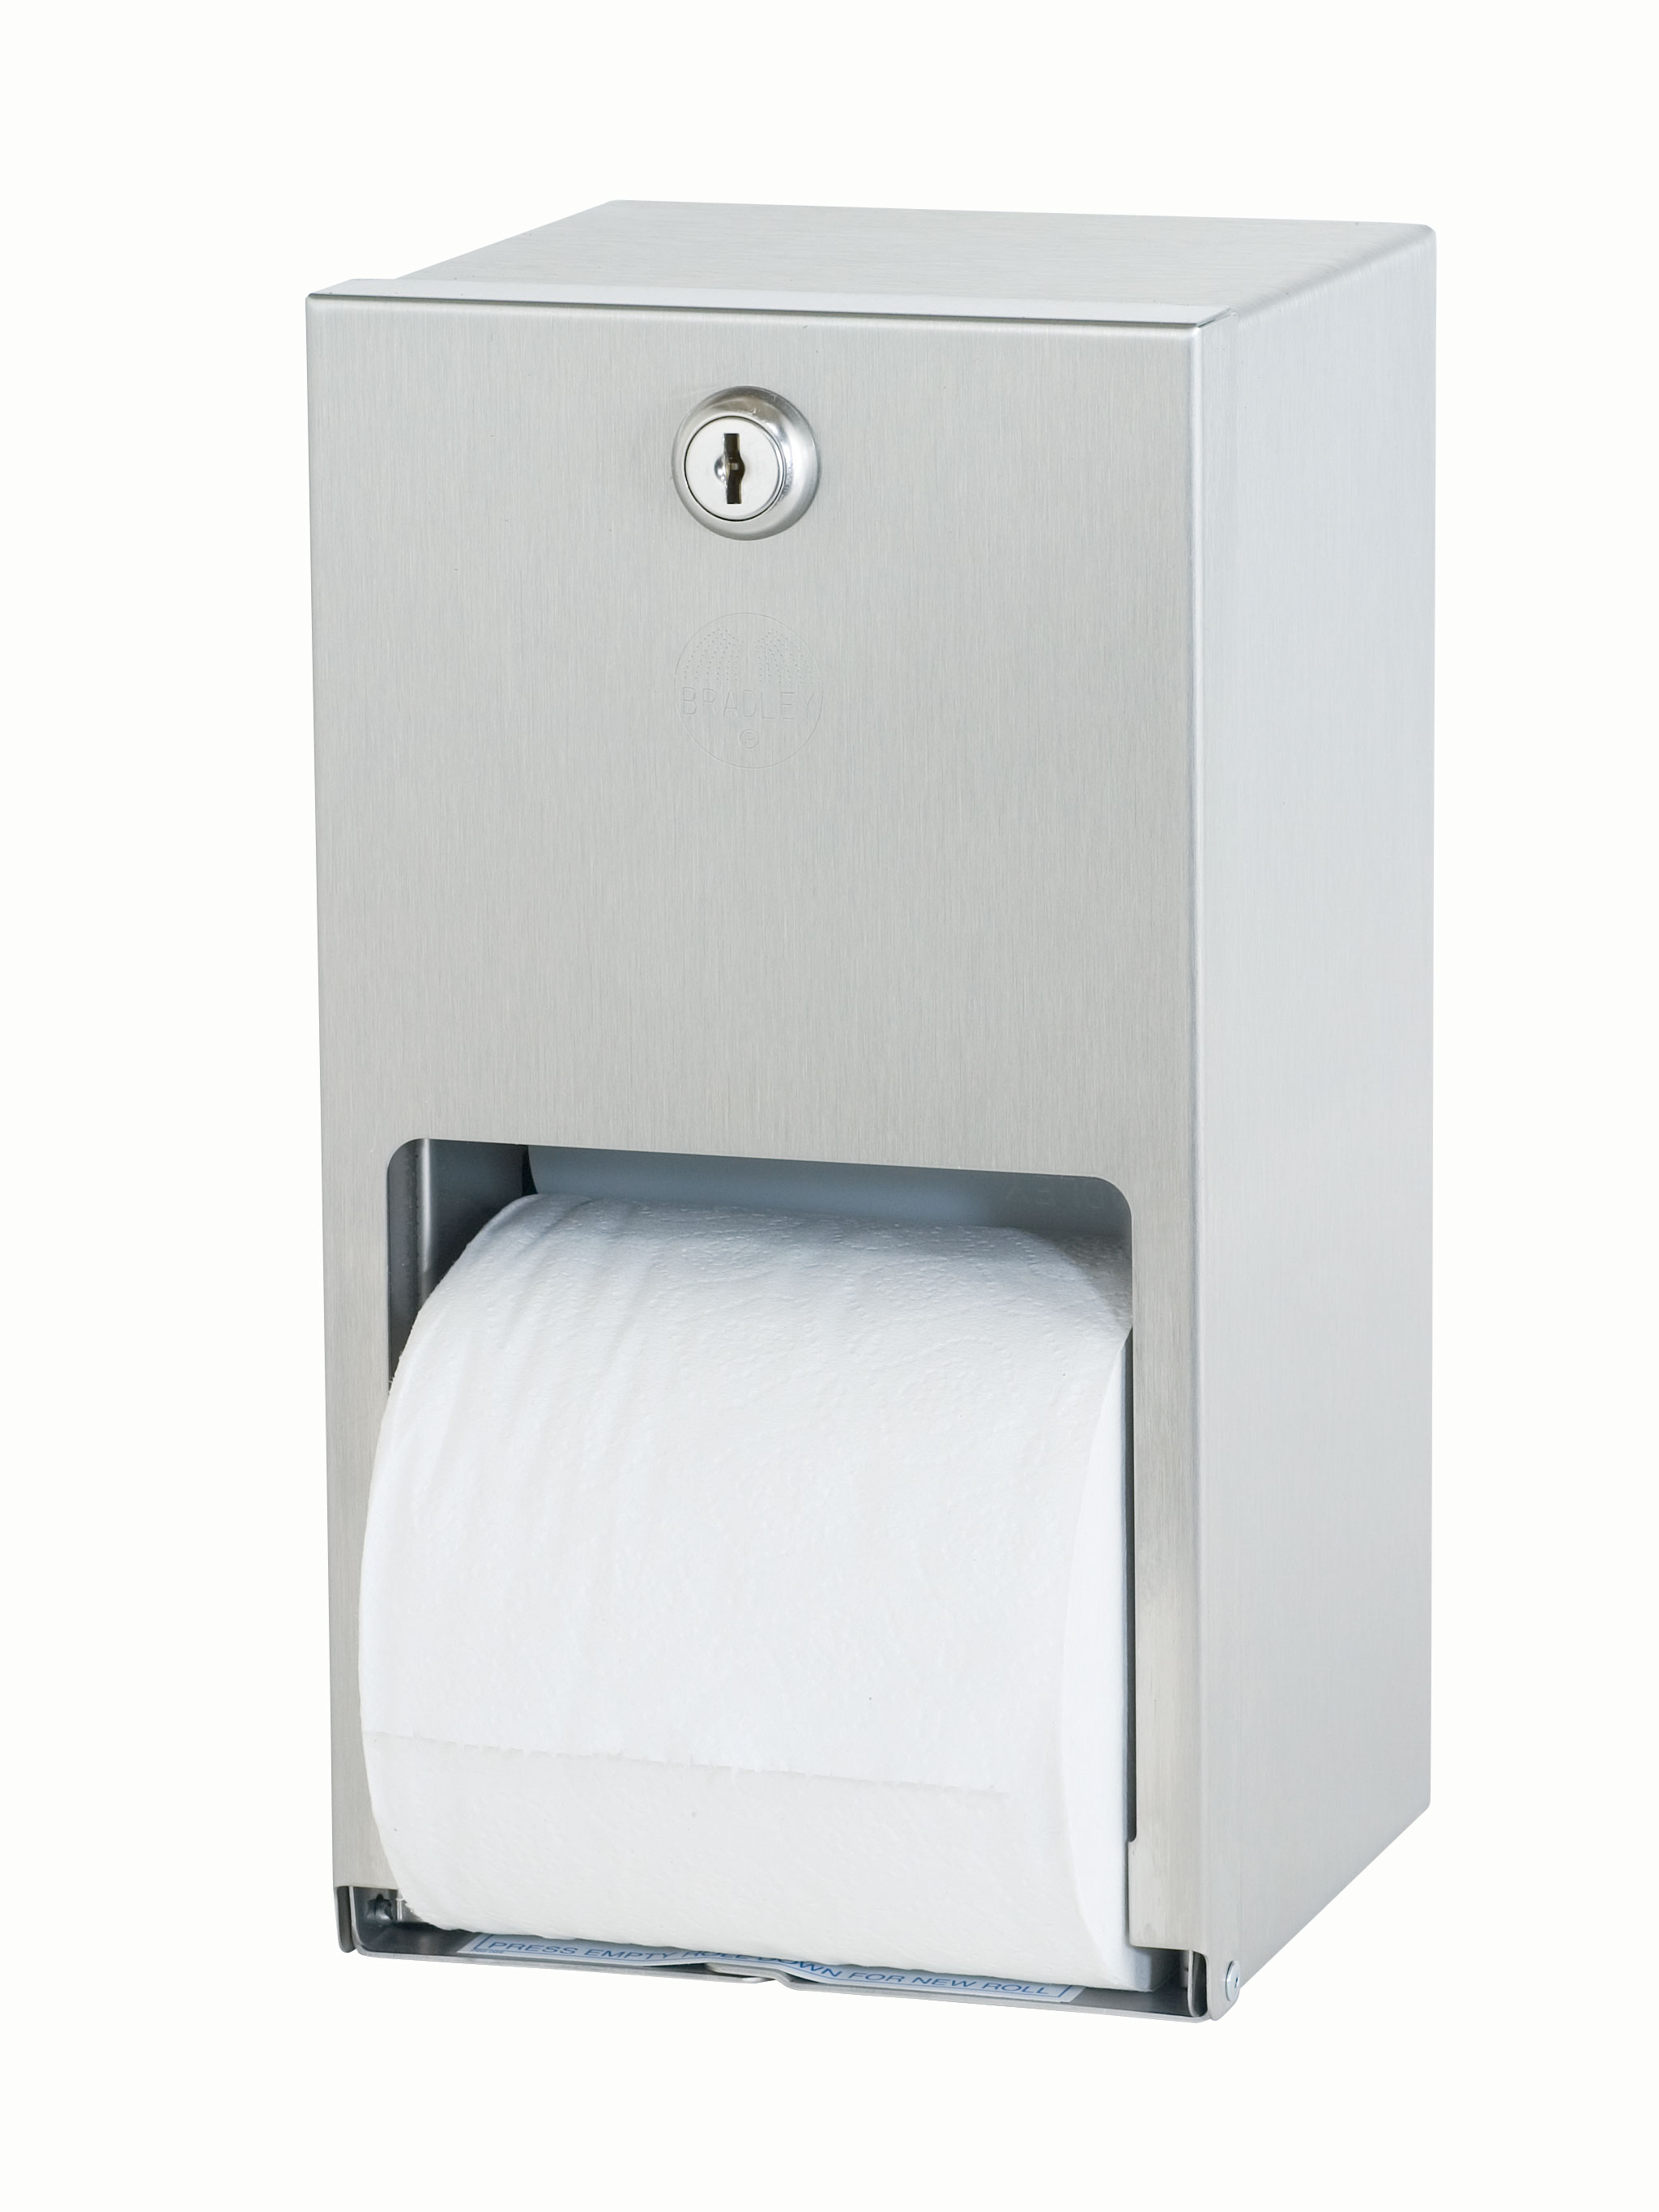 Stainless Steel Toilet Paper Stand Surface Mounted Stainless Steel Toilet Tissue Dispenser